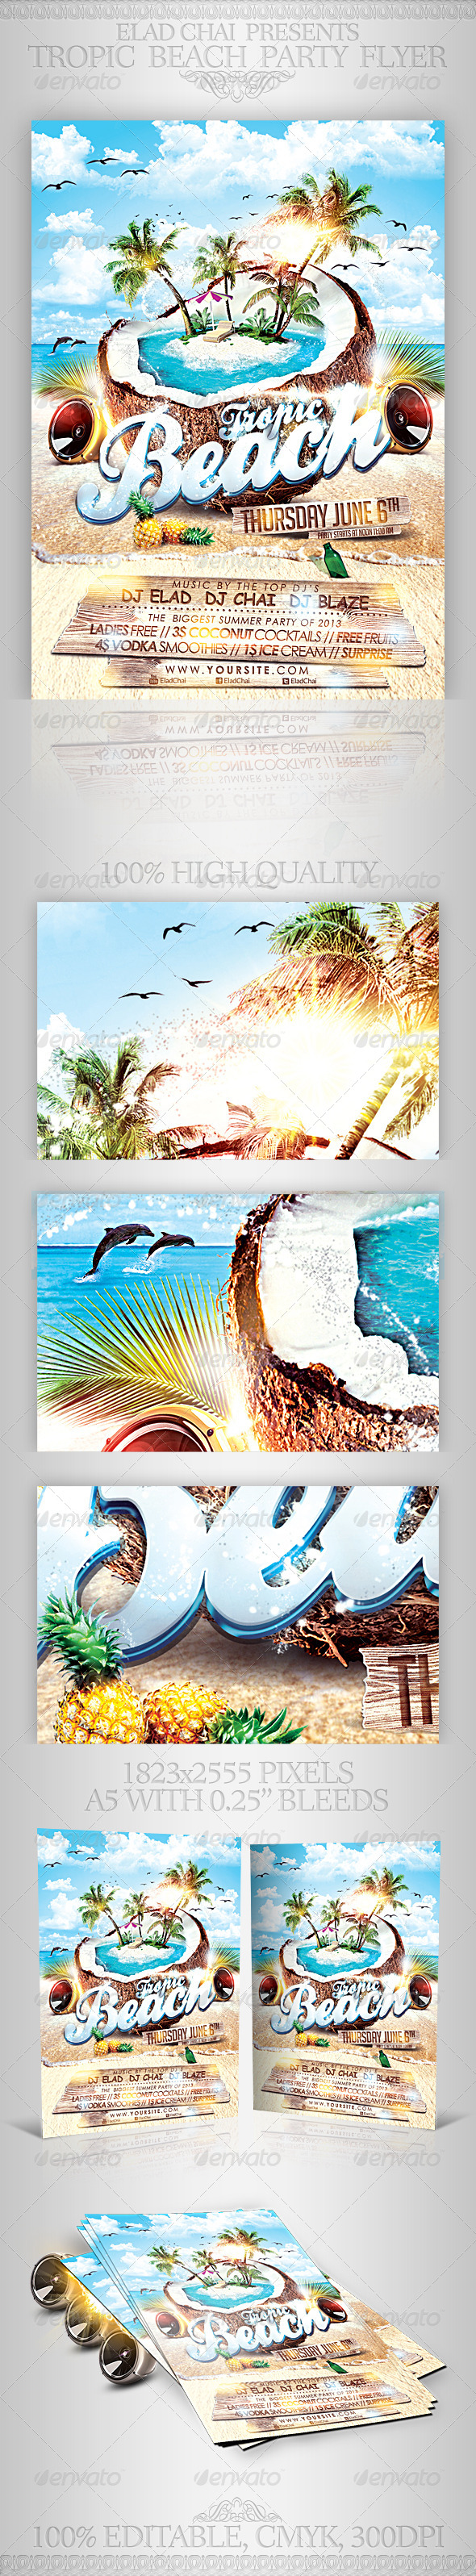 Tropic Beach Summer Party Flyer Template - Clubs & Parties Events